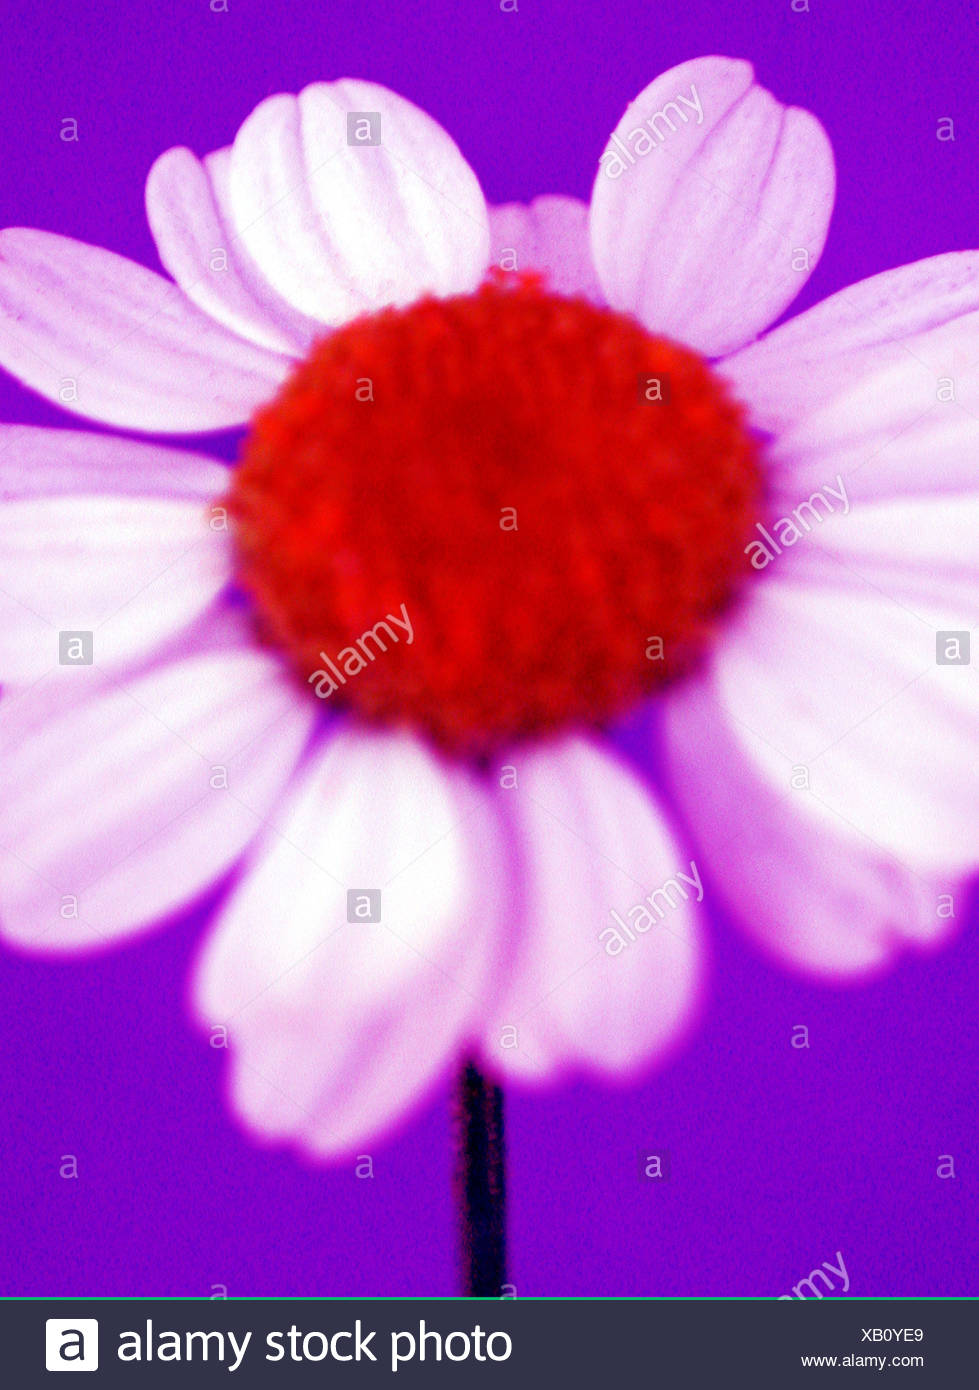 Colour enhanced singular daisy flower - Stock Image